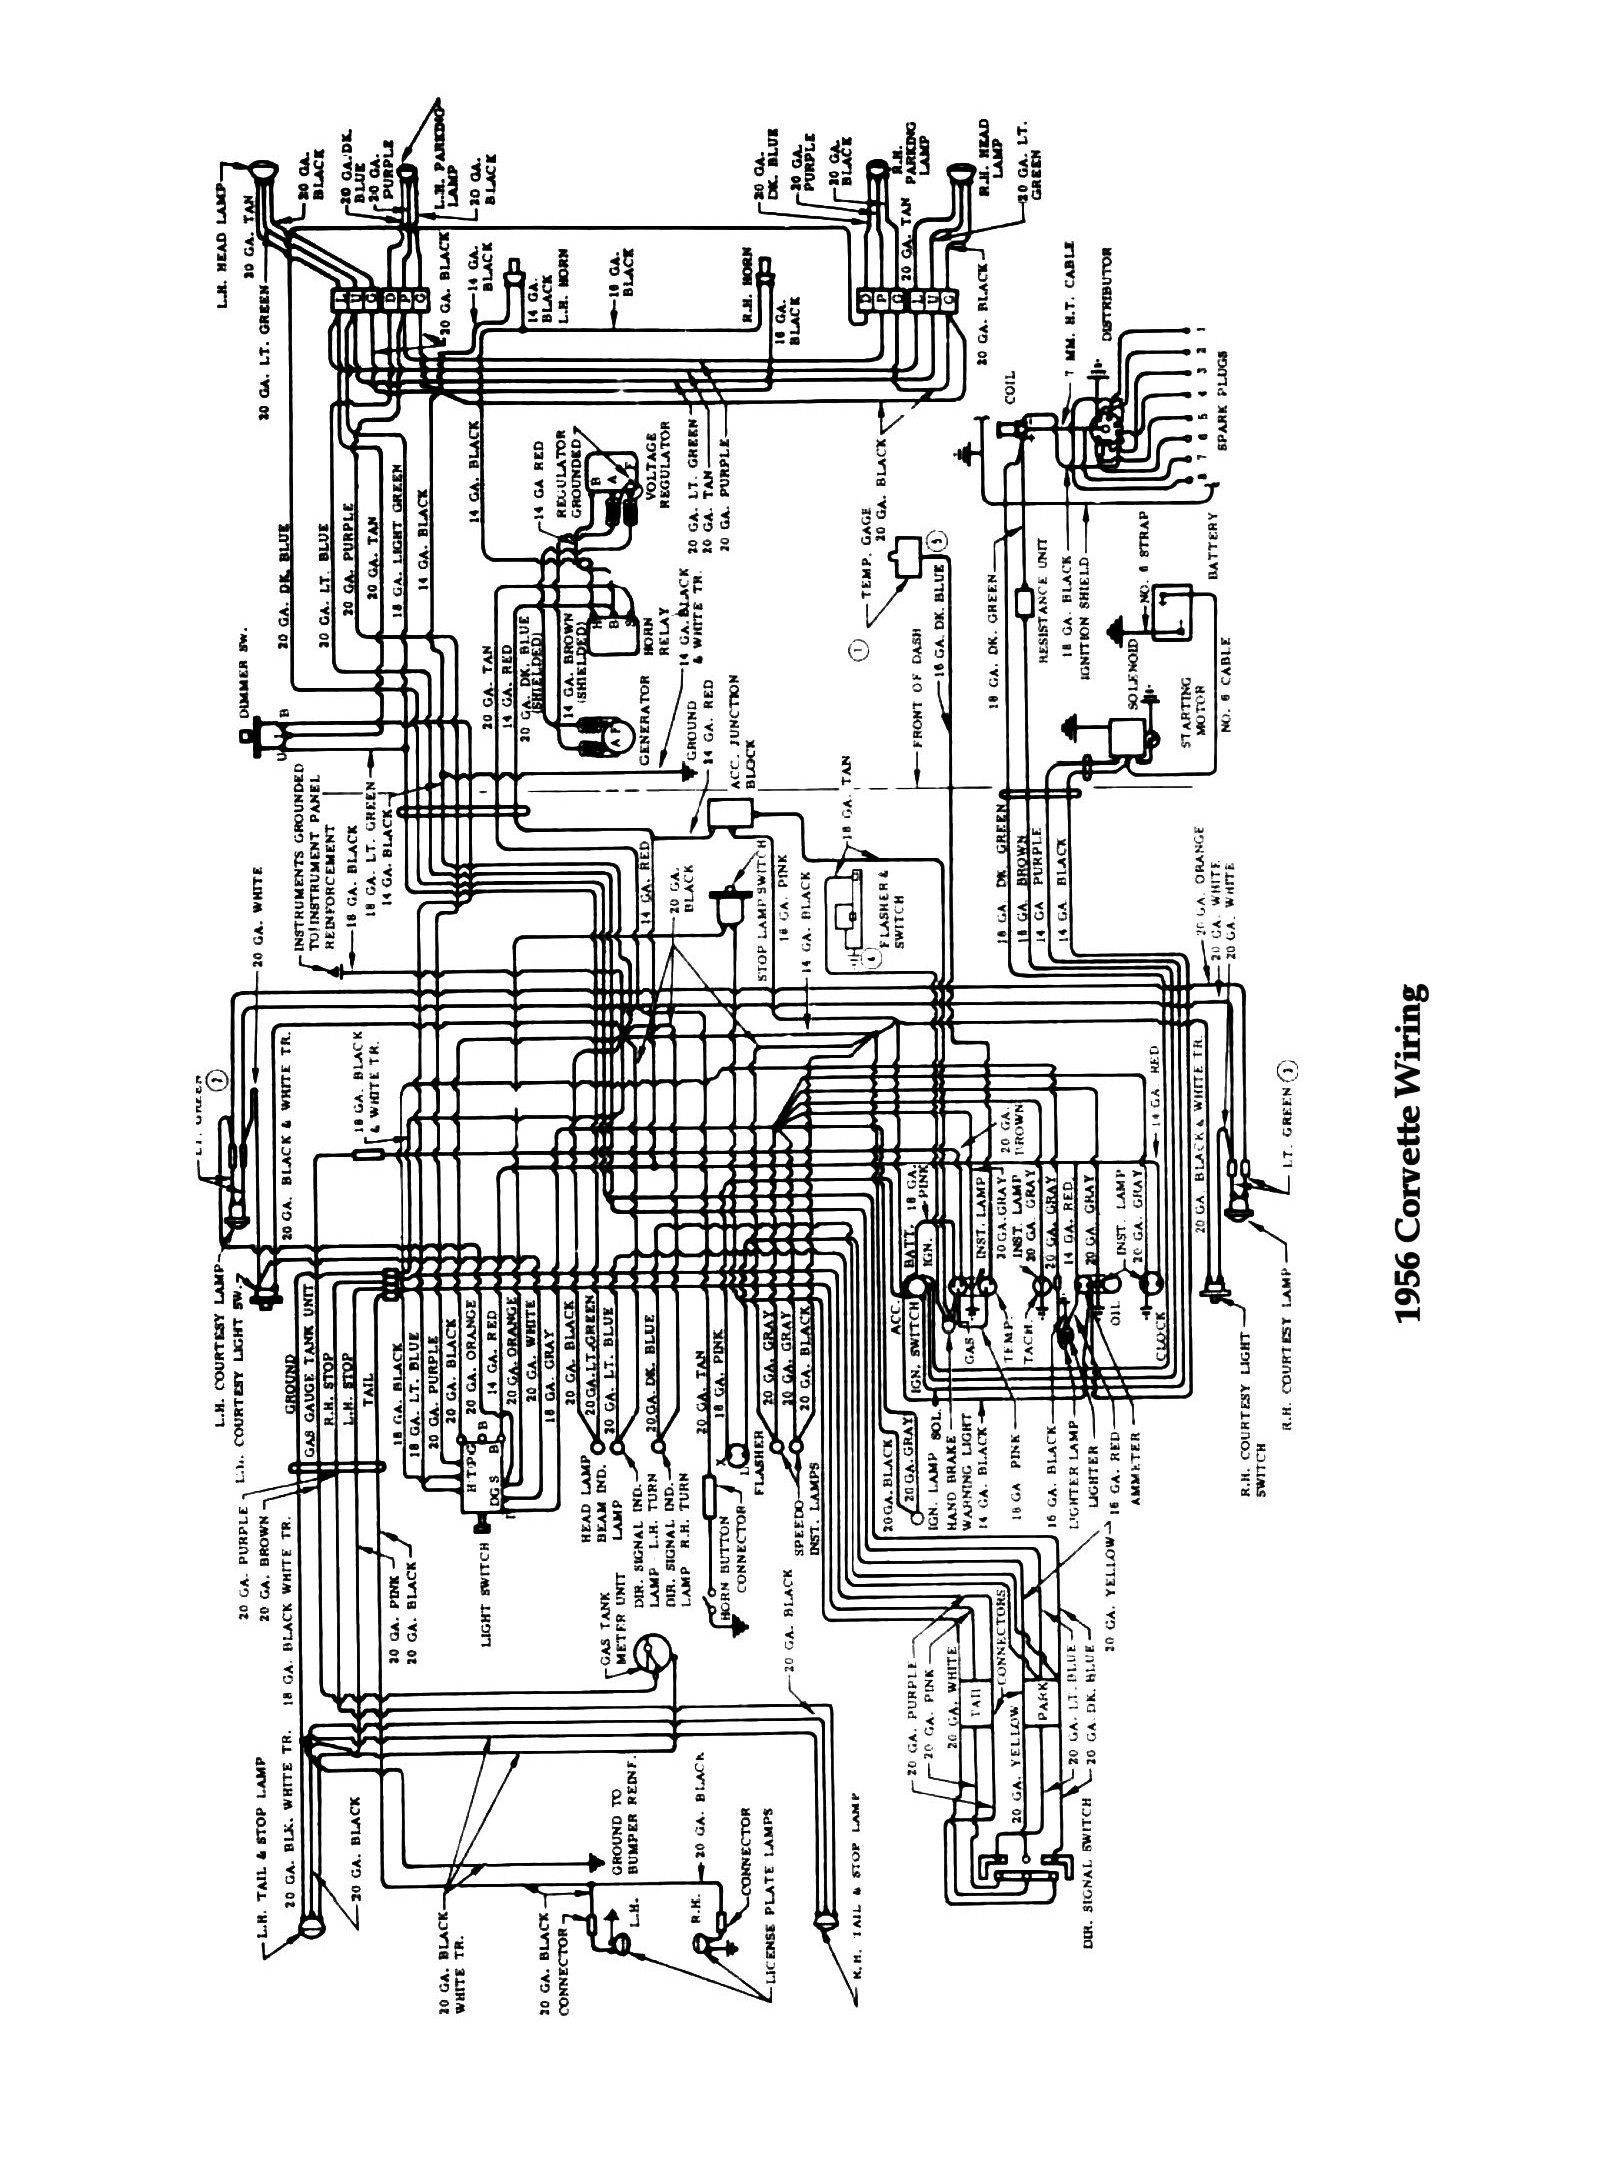 small resolution of kenwood kdc 122 wiring diagram colors wiring diagram z4kenwood kdc 122 wiring diagram 138 index listing